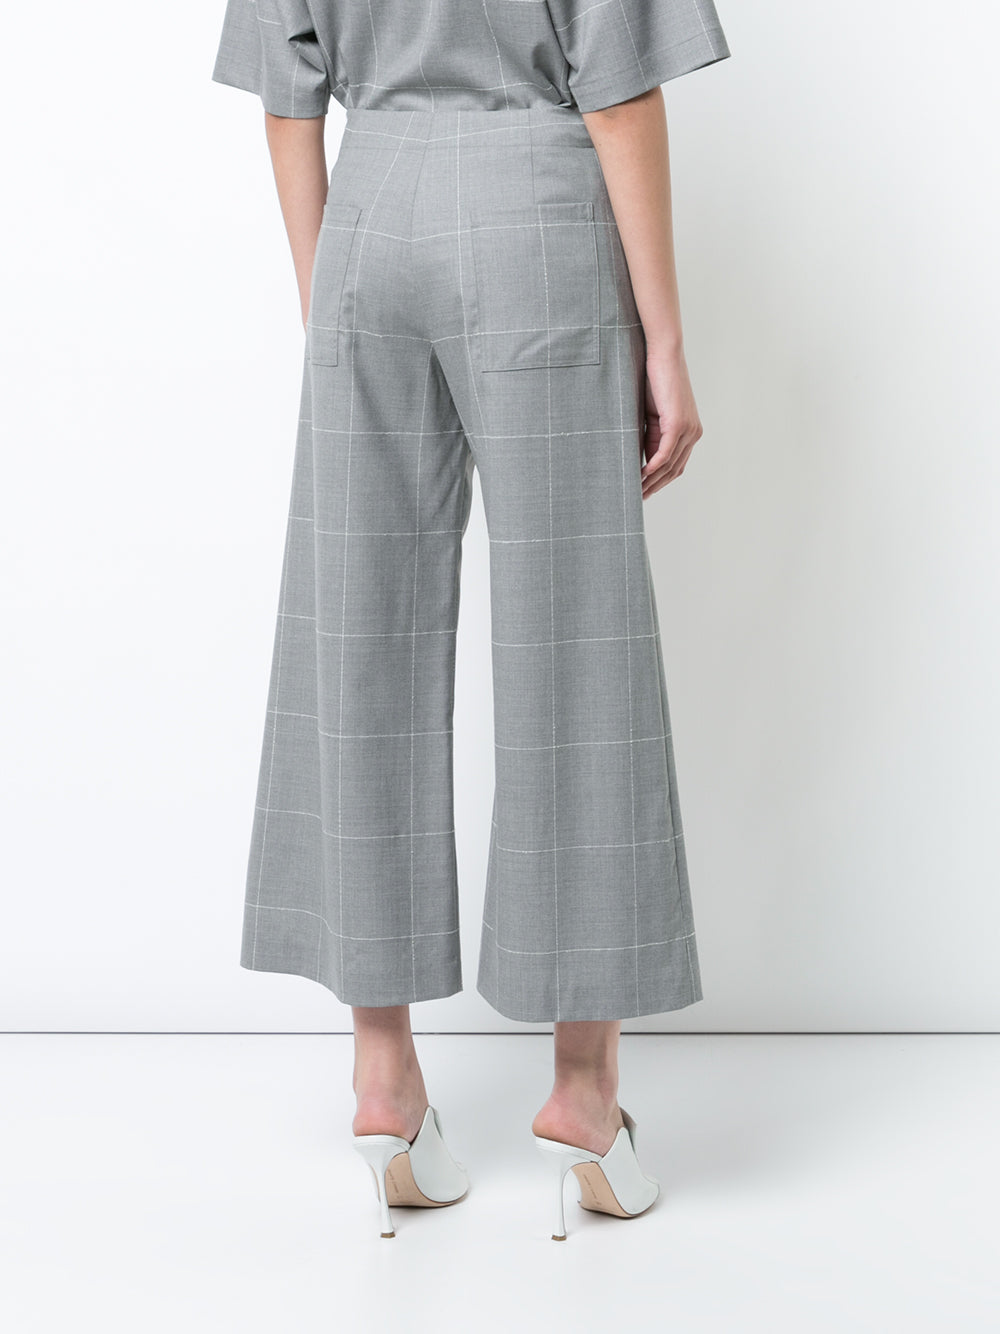 WINDOWPANE WOOL FLAT FRONT CULOTTE